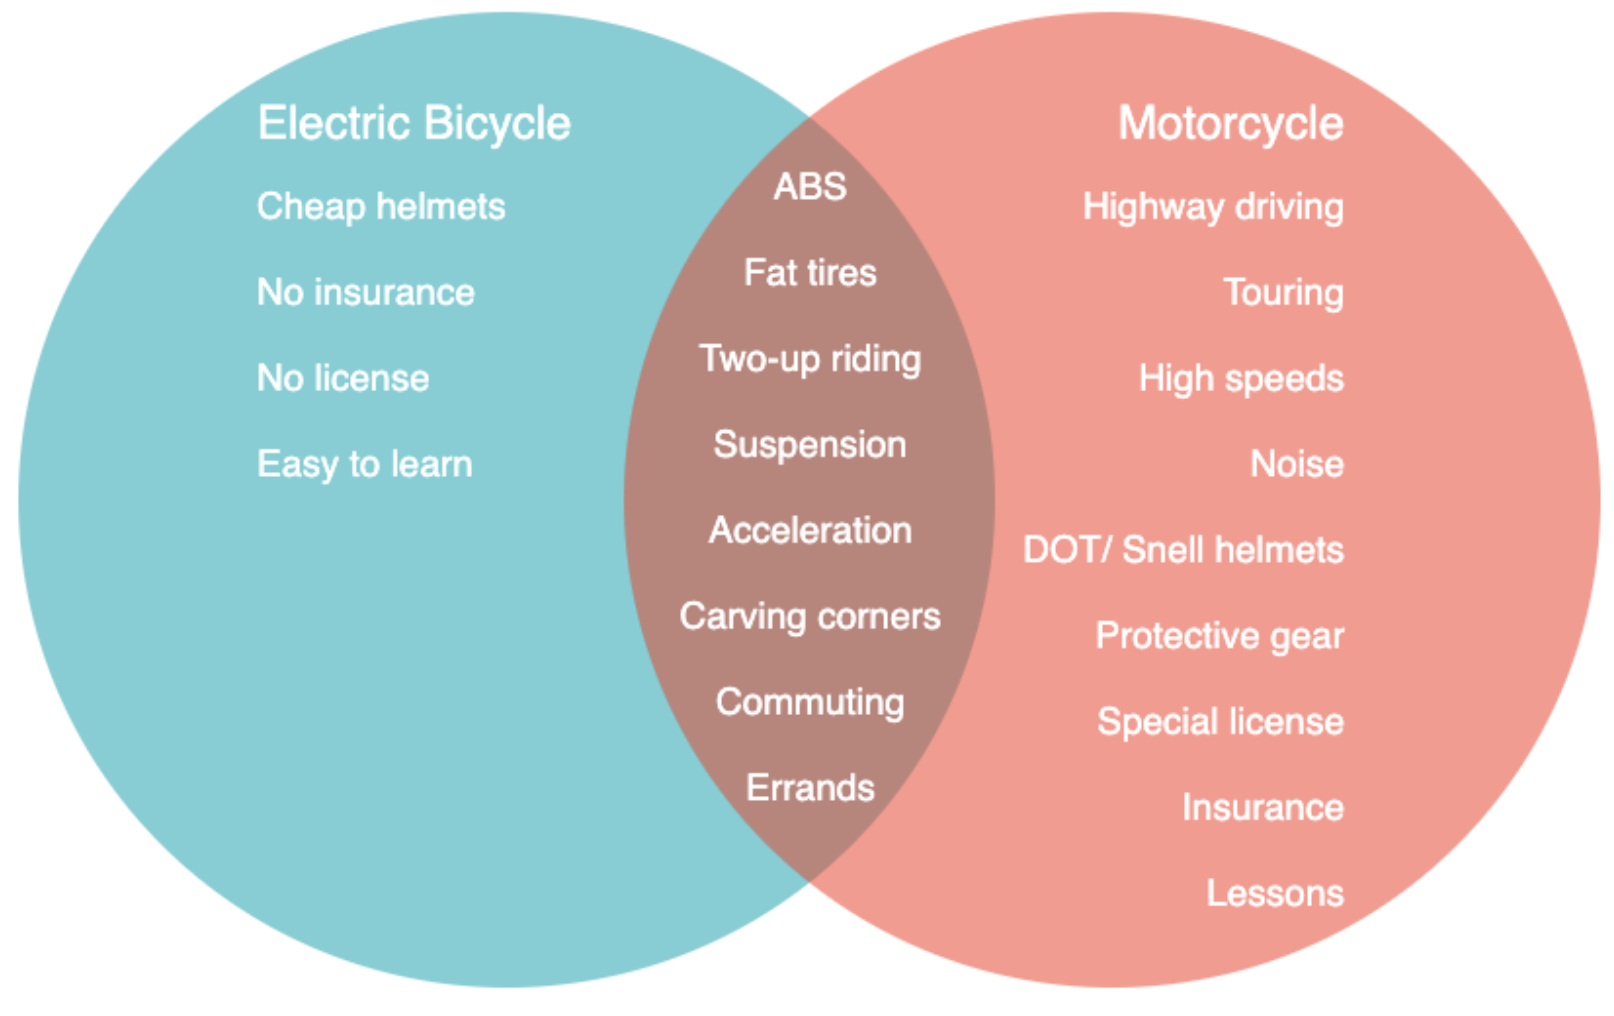 Venn diagram of intersection of ebikes and motorcycles